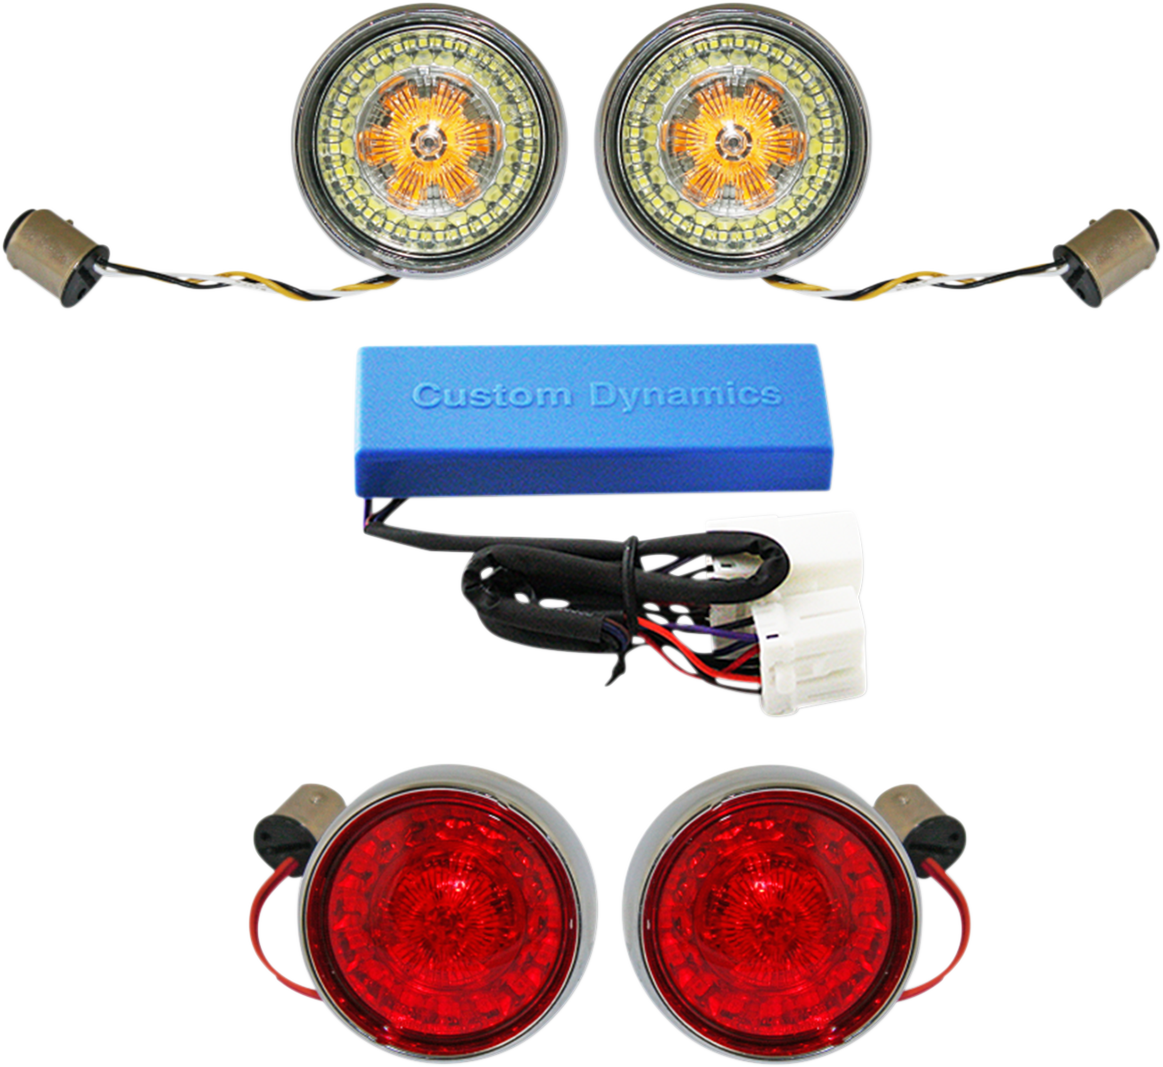 Custom Dynamics Probeam LED 1156 1157 Turn Signal Kit for 02-11 Harley Touring